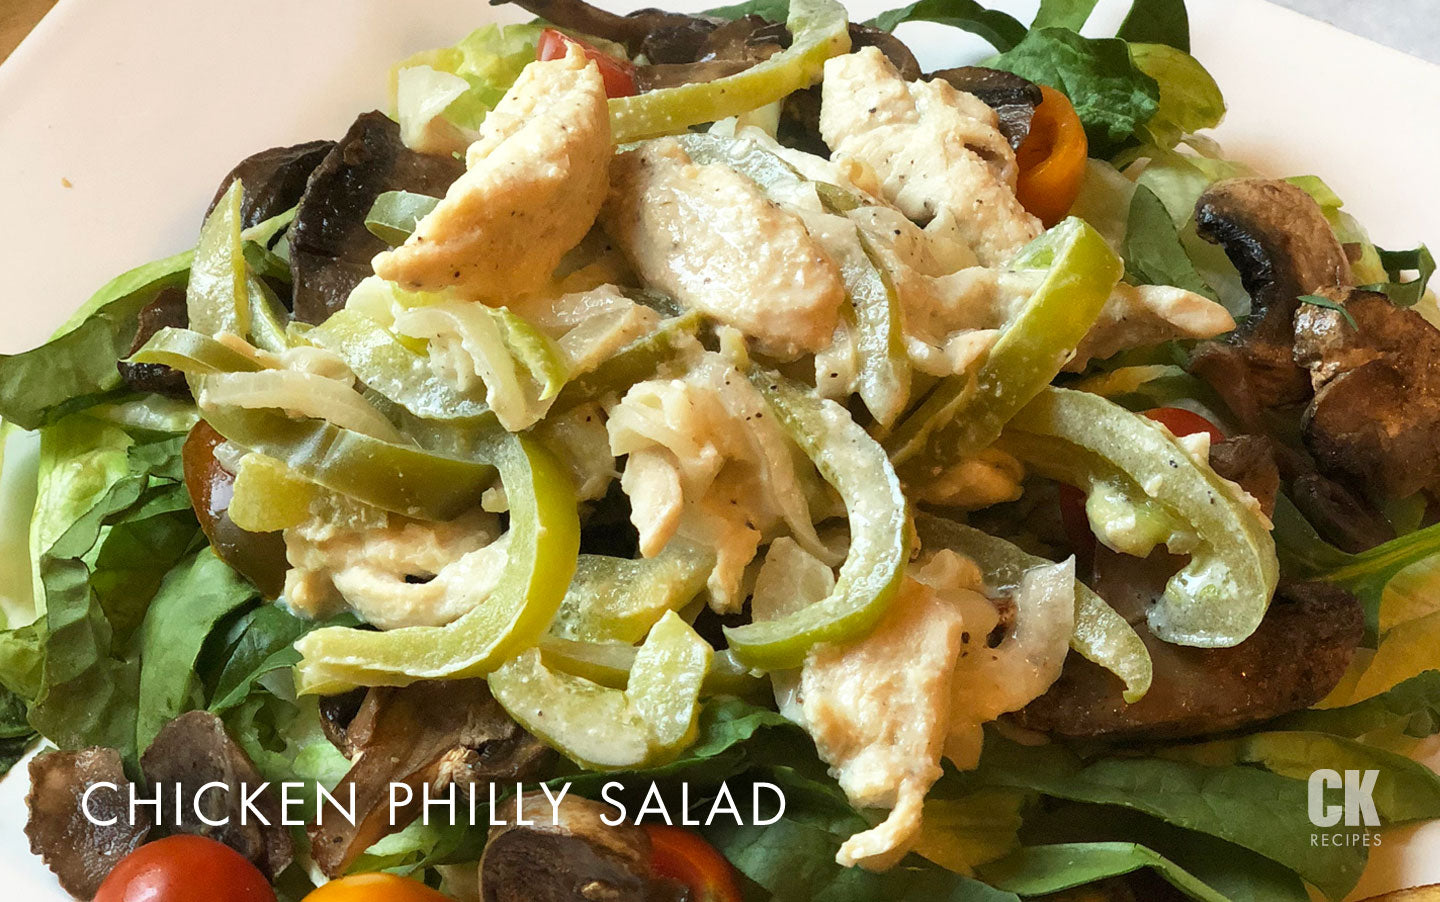 Chicken-Philly-Salad